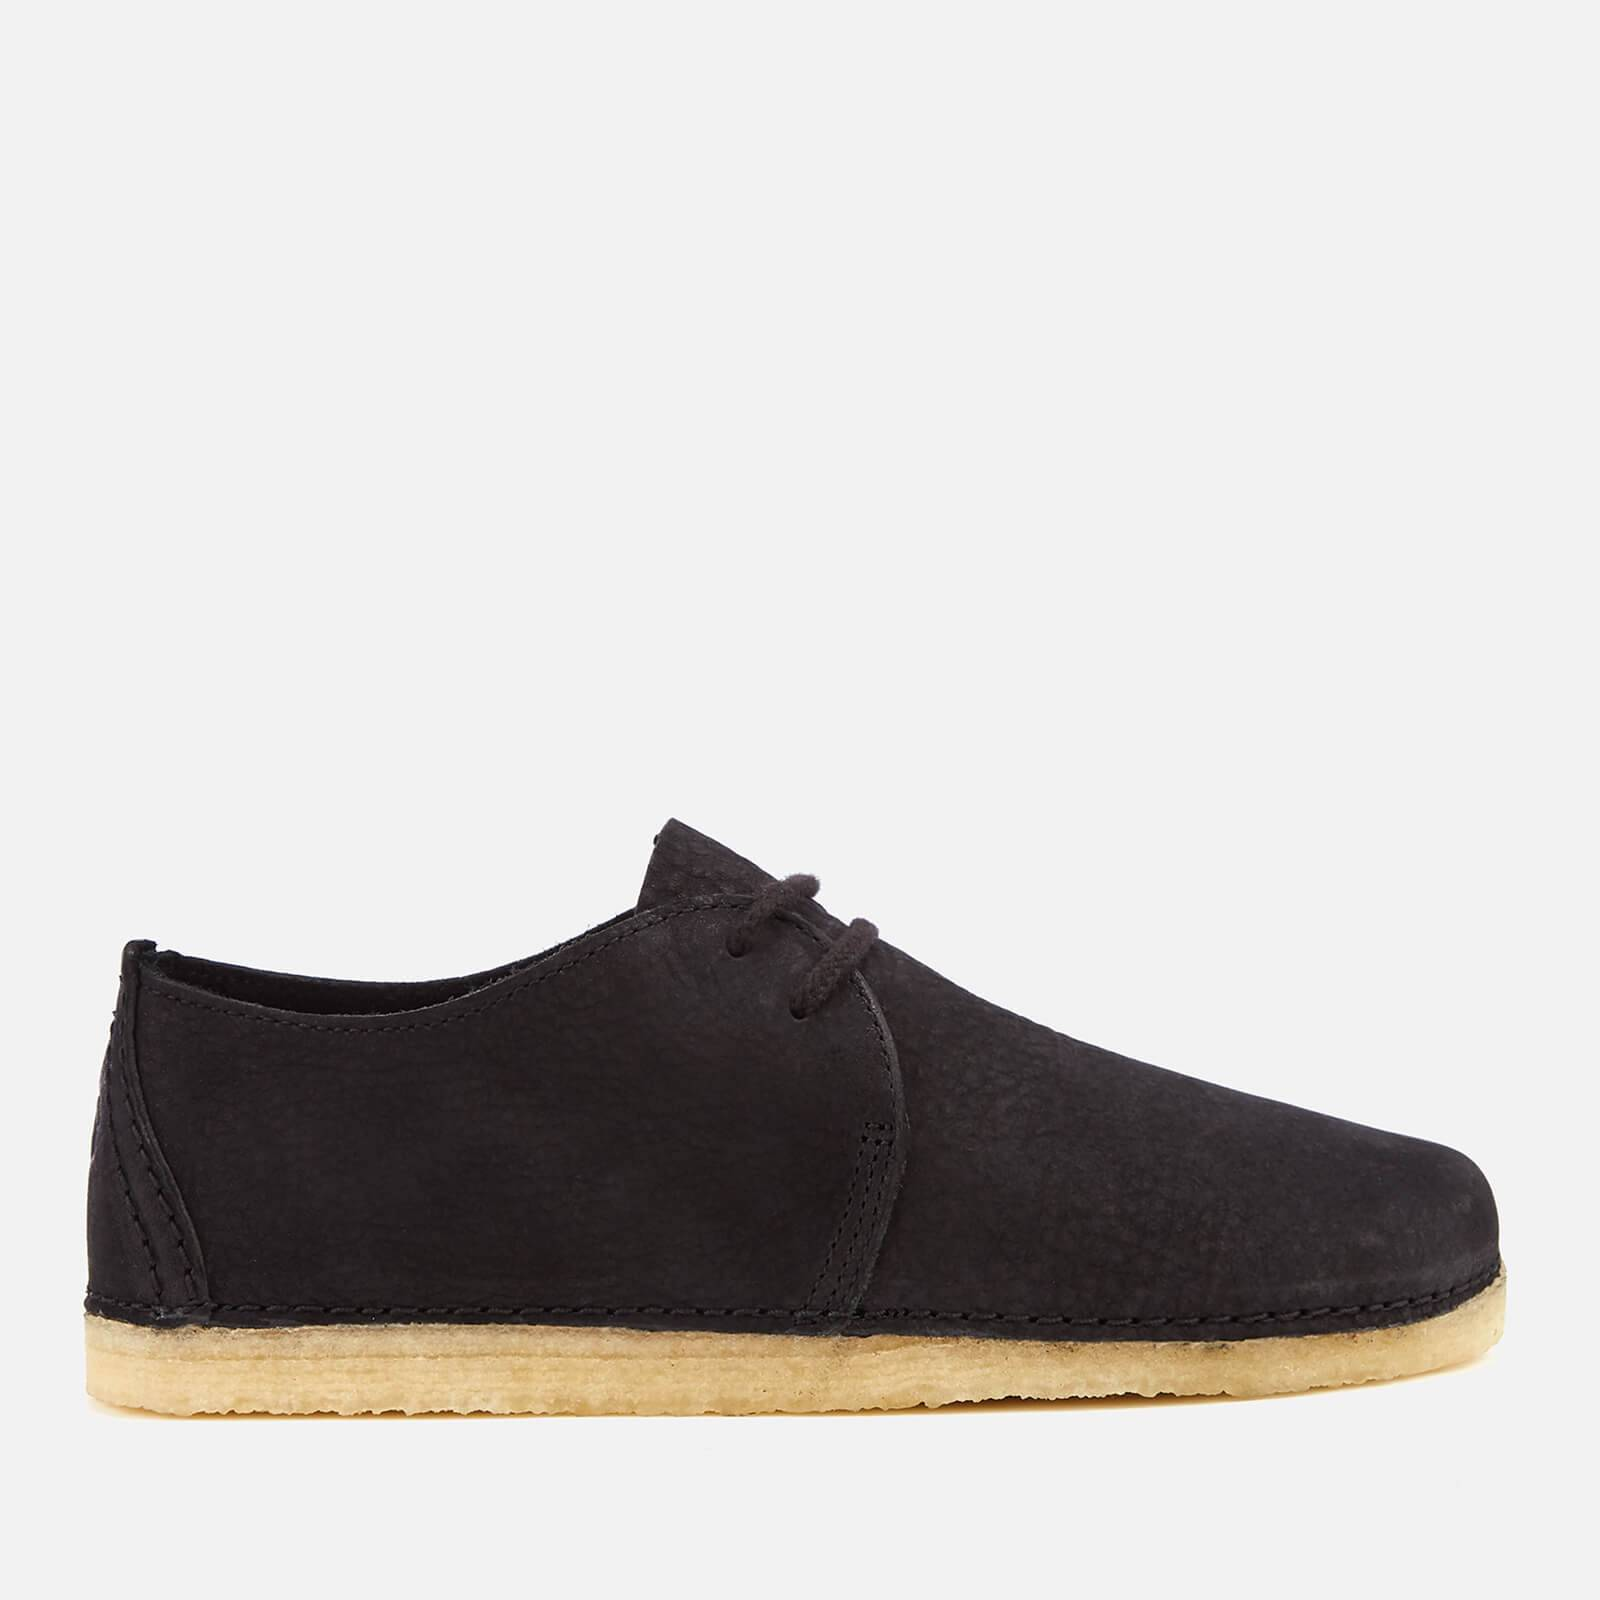 Clarks Originals Women's Ashton Nubuck Lace Up Shoes - Black - UK 5 - Black